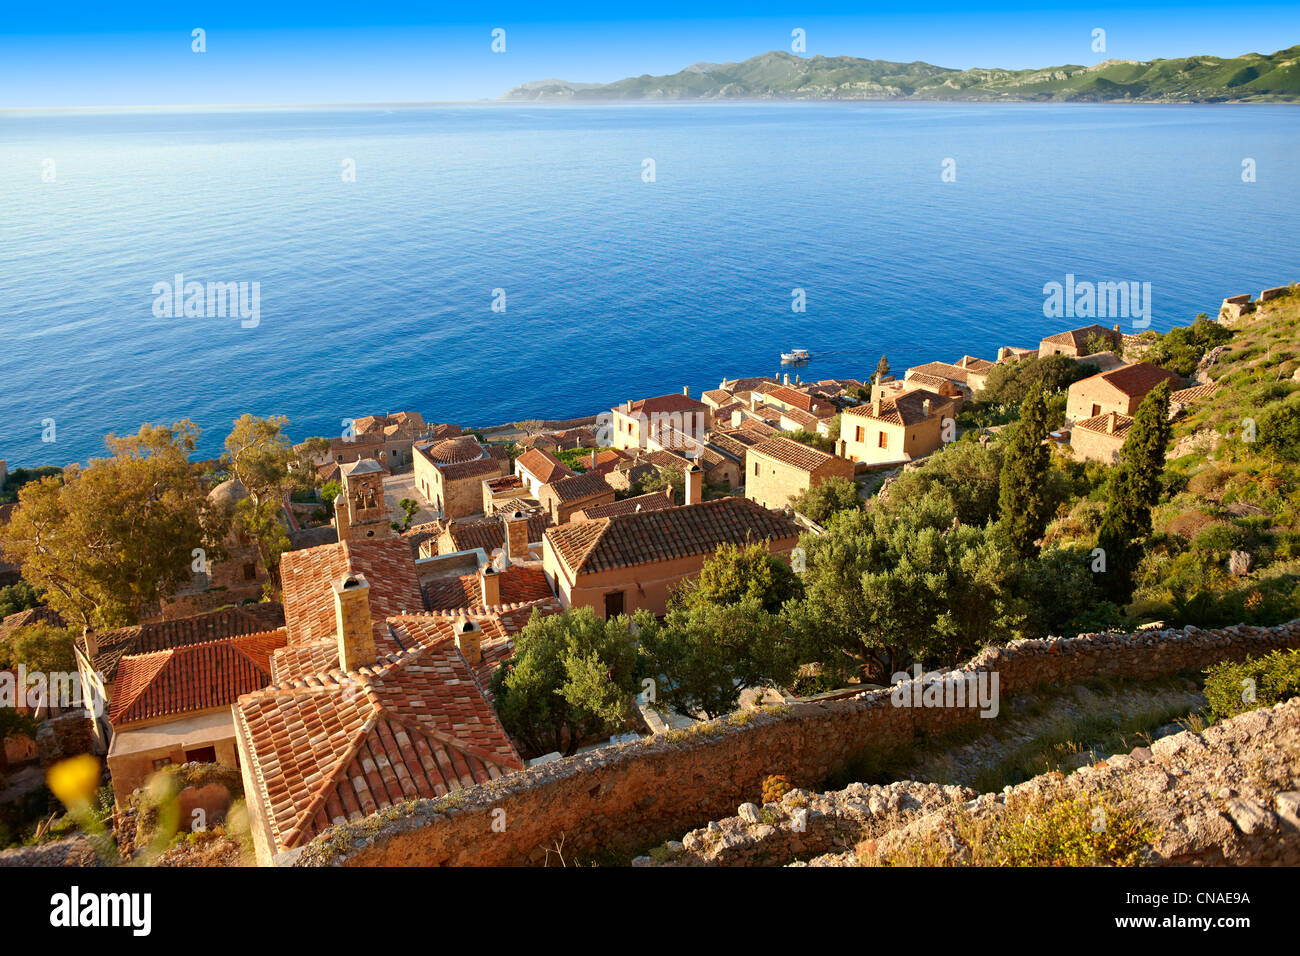 Arial view of Monemvasia ( Μονεμβασία ) Byzantine Island castle town with acropolis on the plateau. Peloponnese, - Stock Image